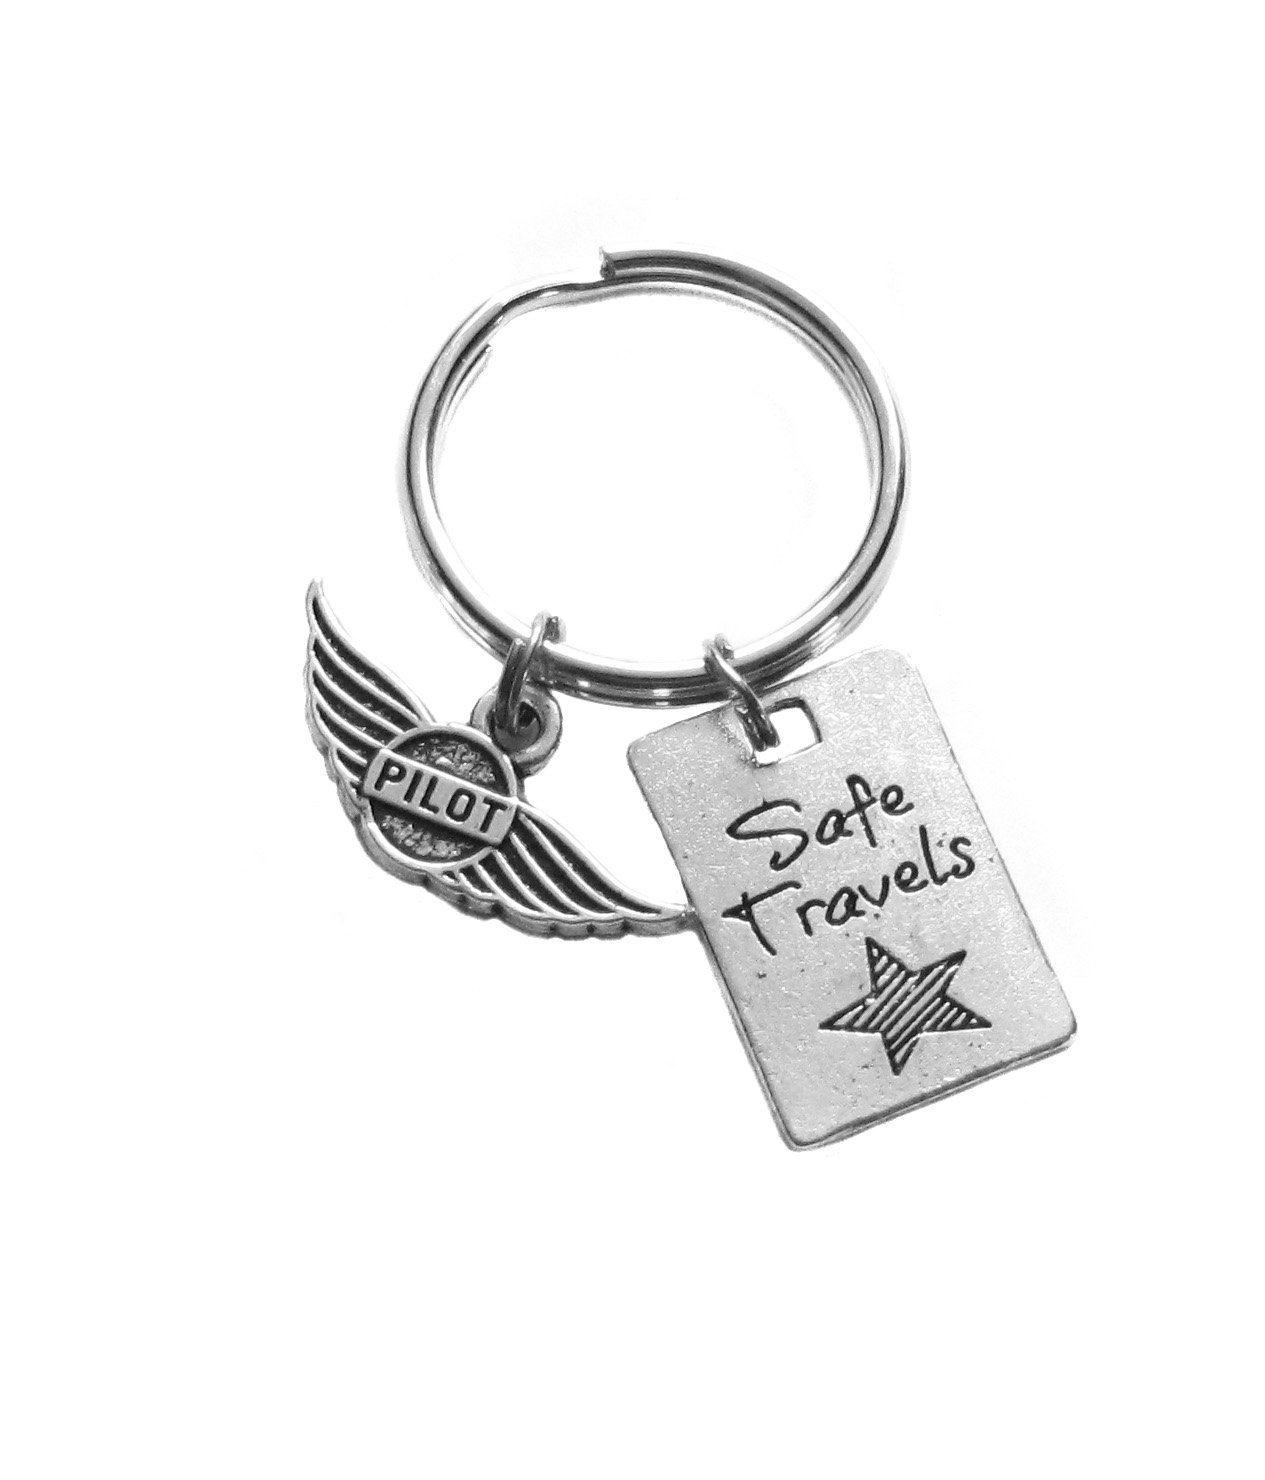 Heart Projects Pilot Safe Travels Charms Keychain Bag Luggage Gift